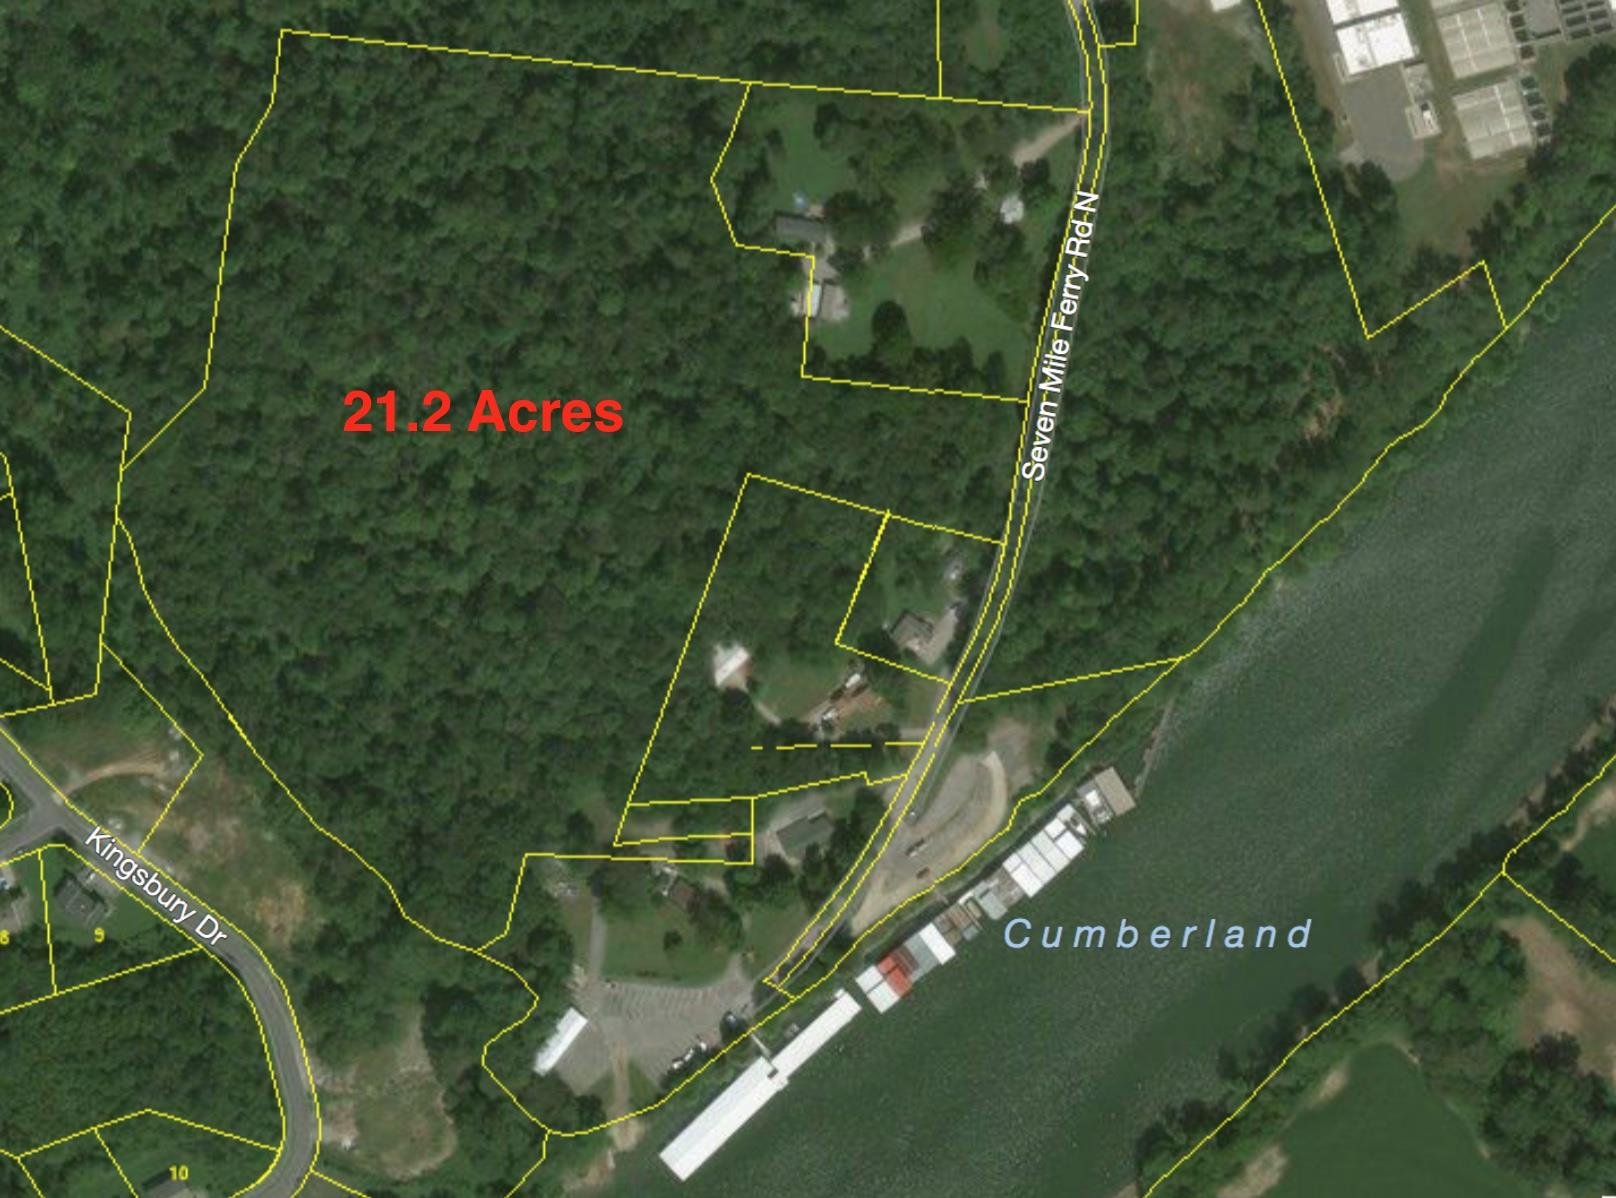 1160 Seven Mile Ferry Rd, N, Clarksville, TN 37040 - Clarksville, TN real estate listing